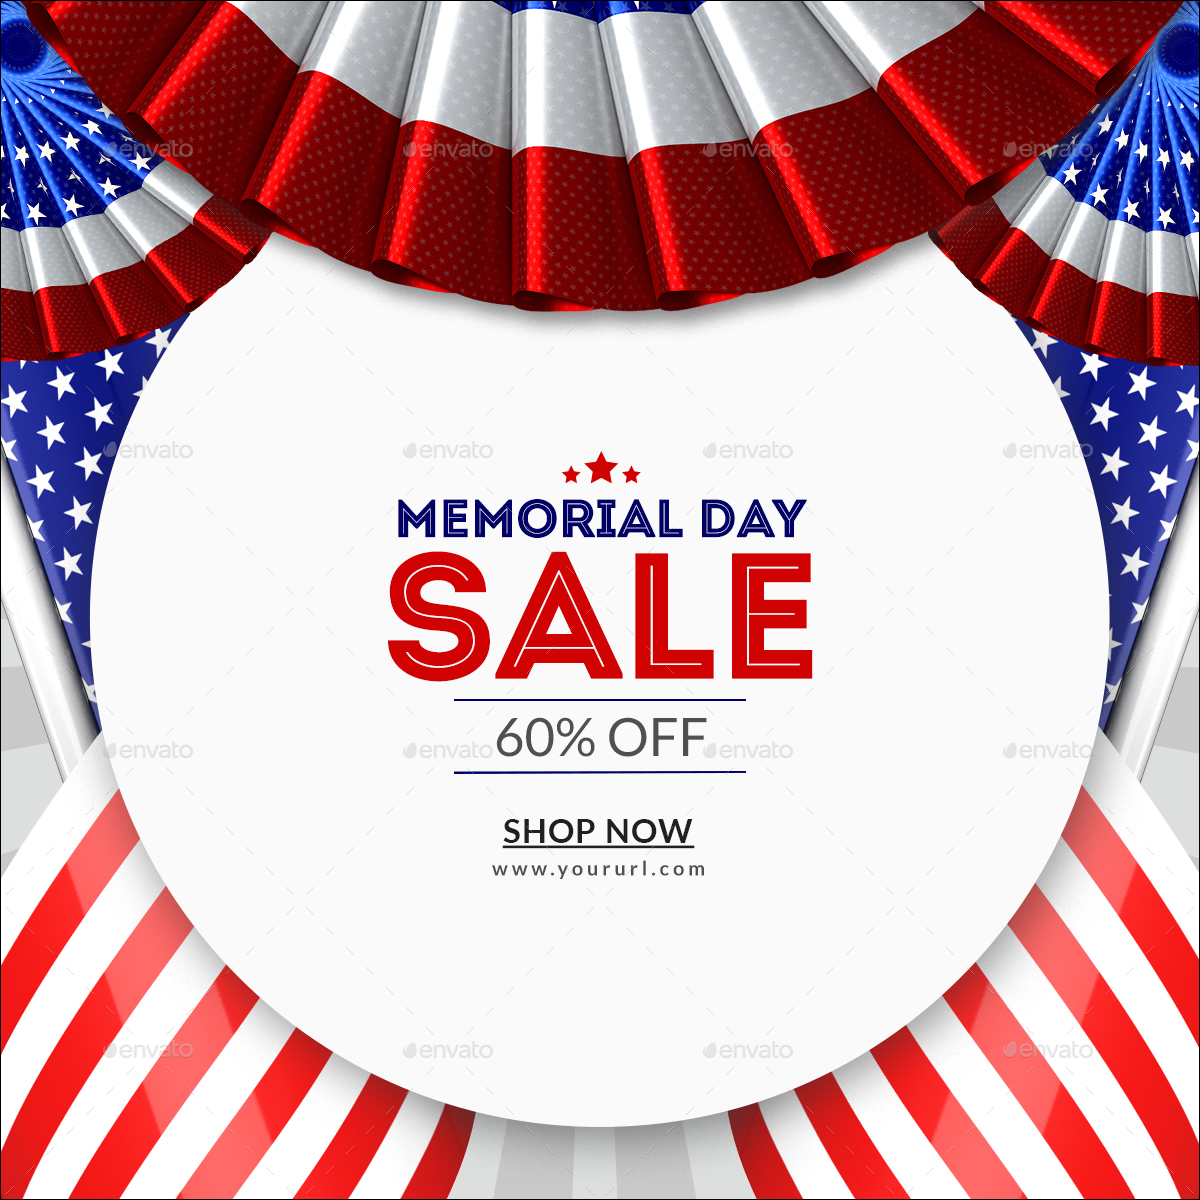 memorial day banners by doto